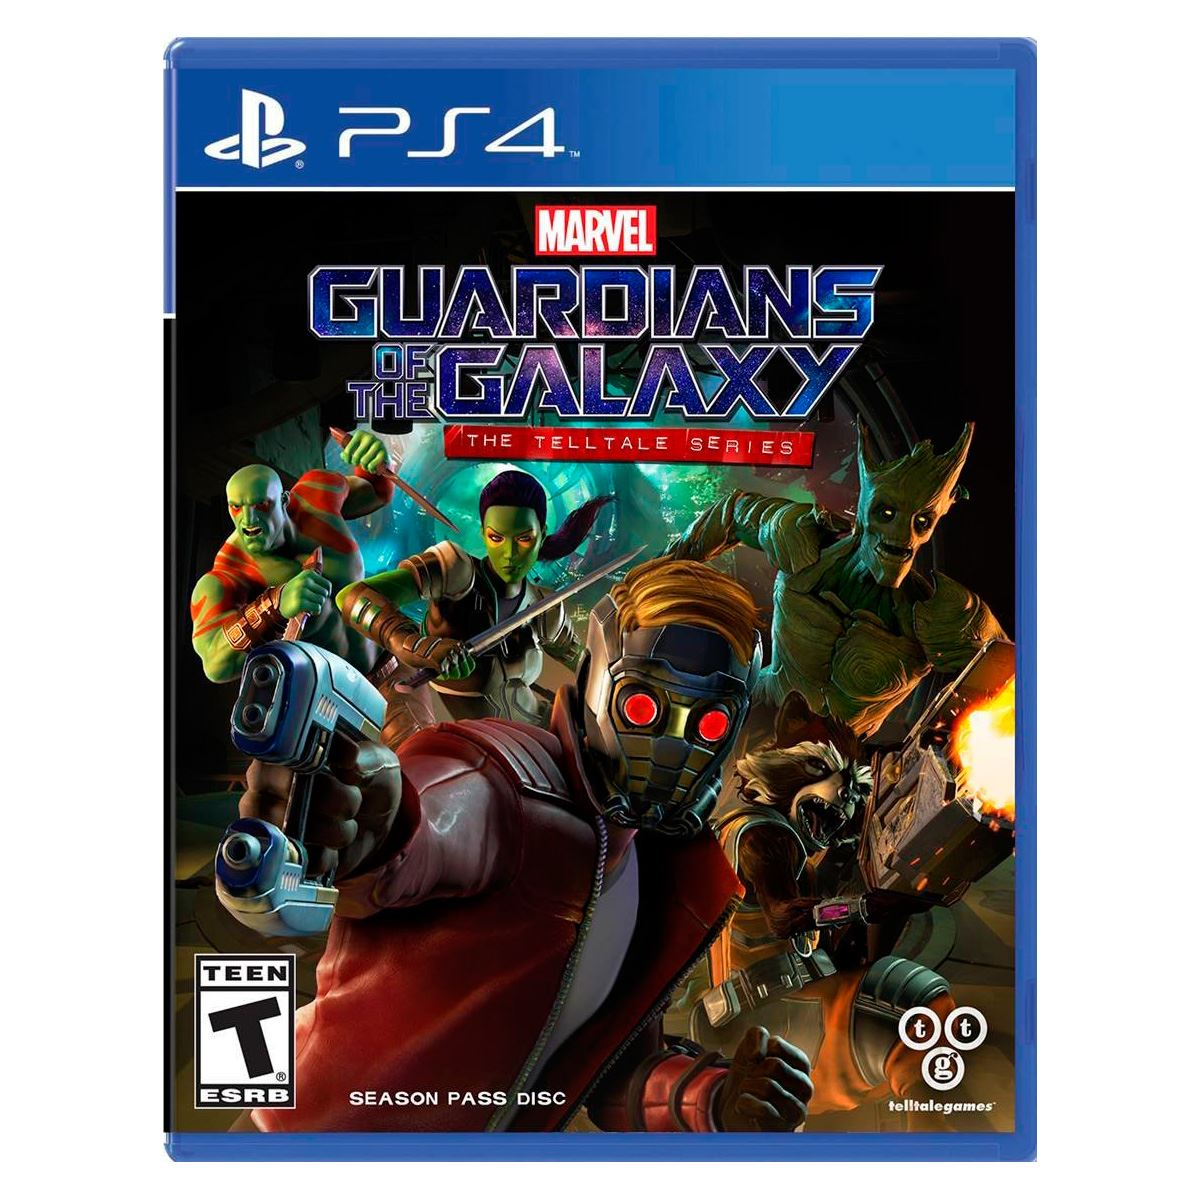 Ps4 guardians of the galaxy  - Sanborns